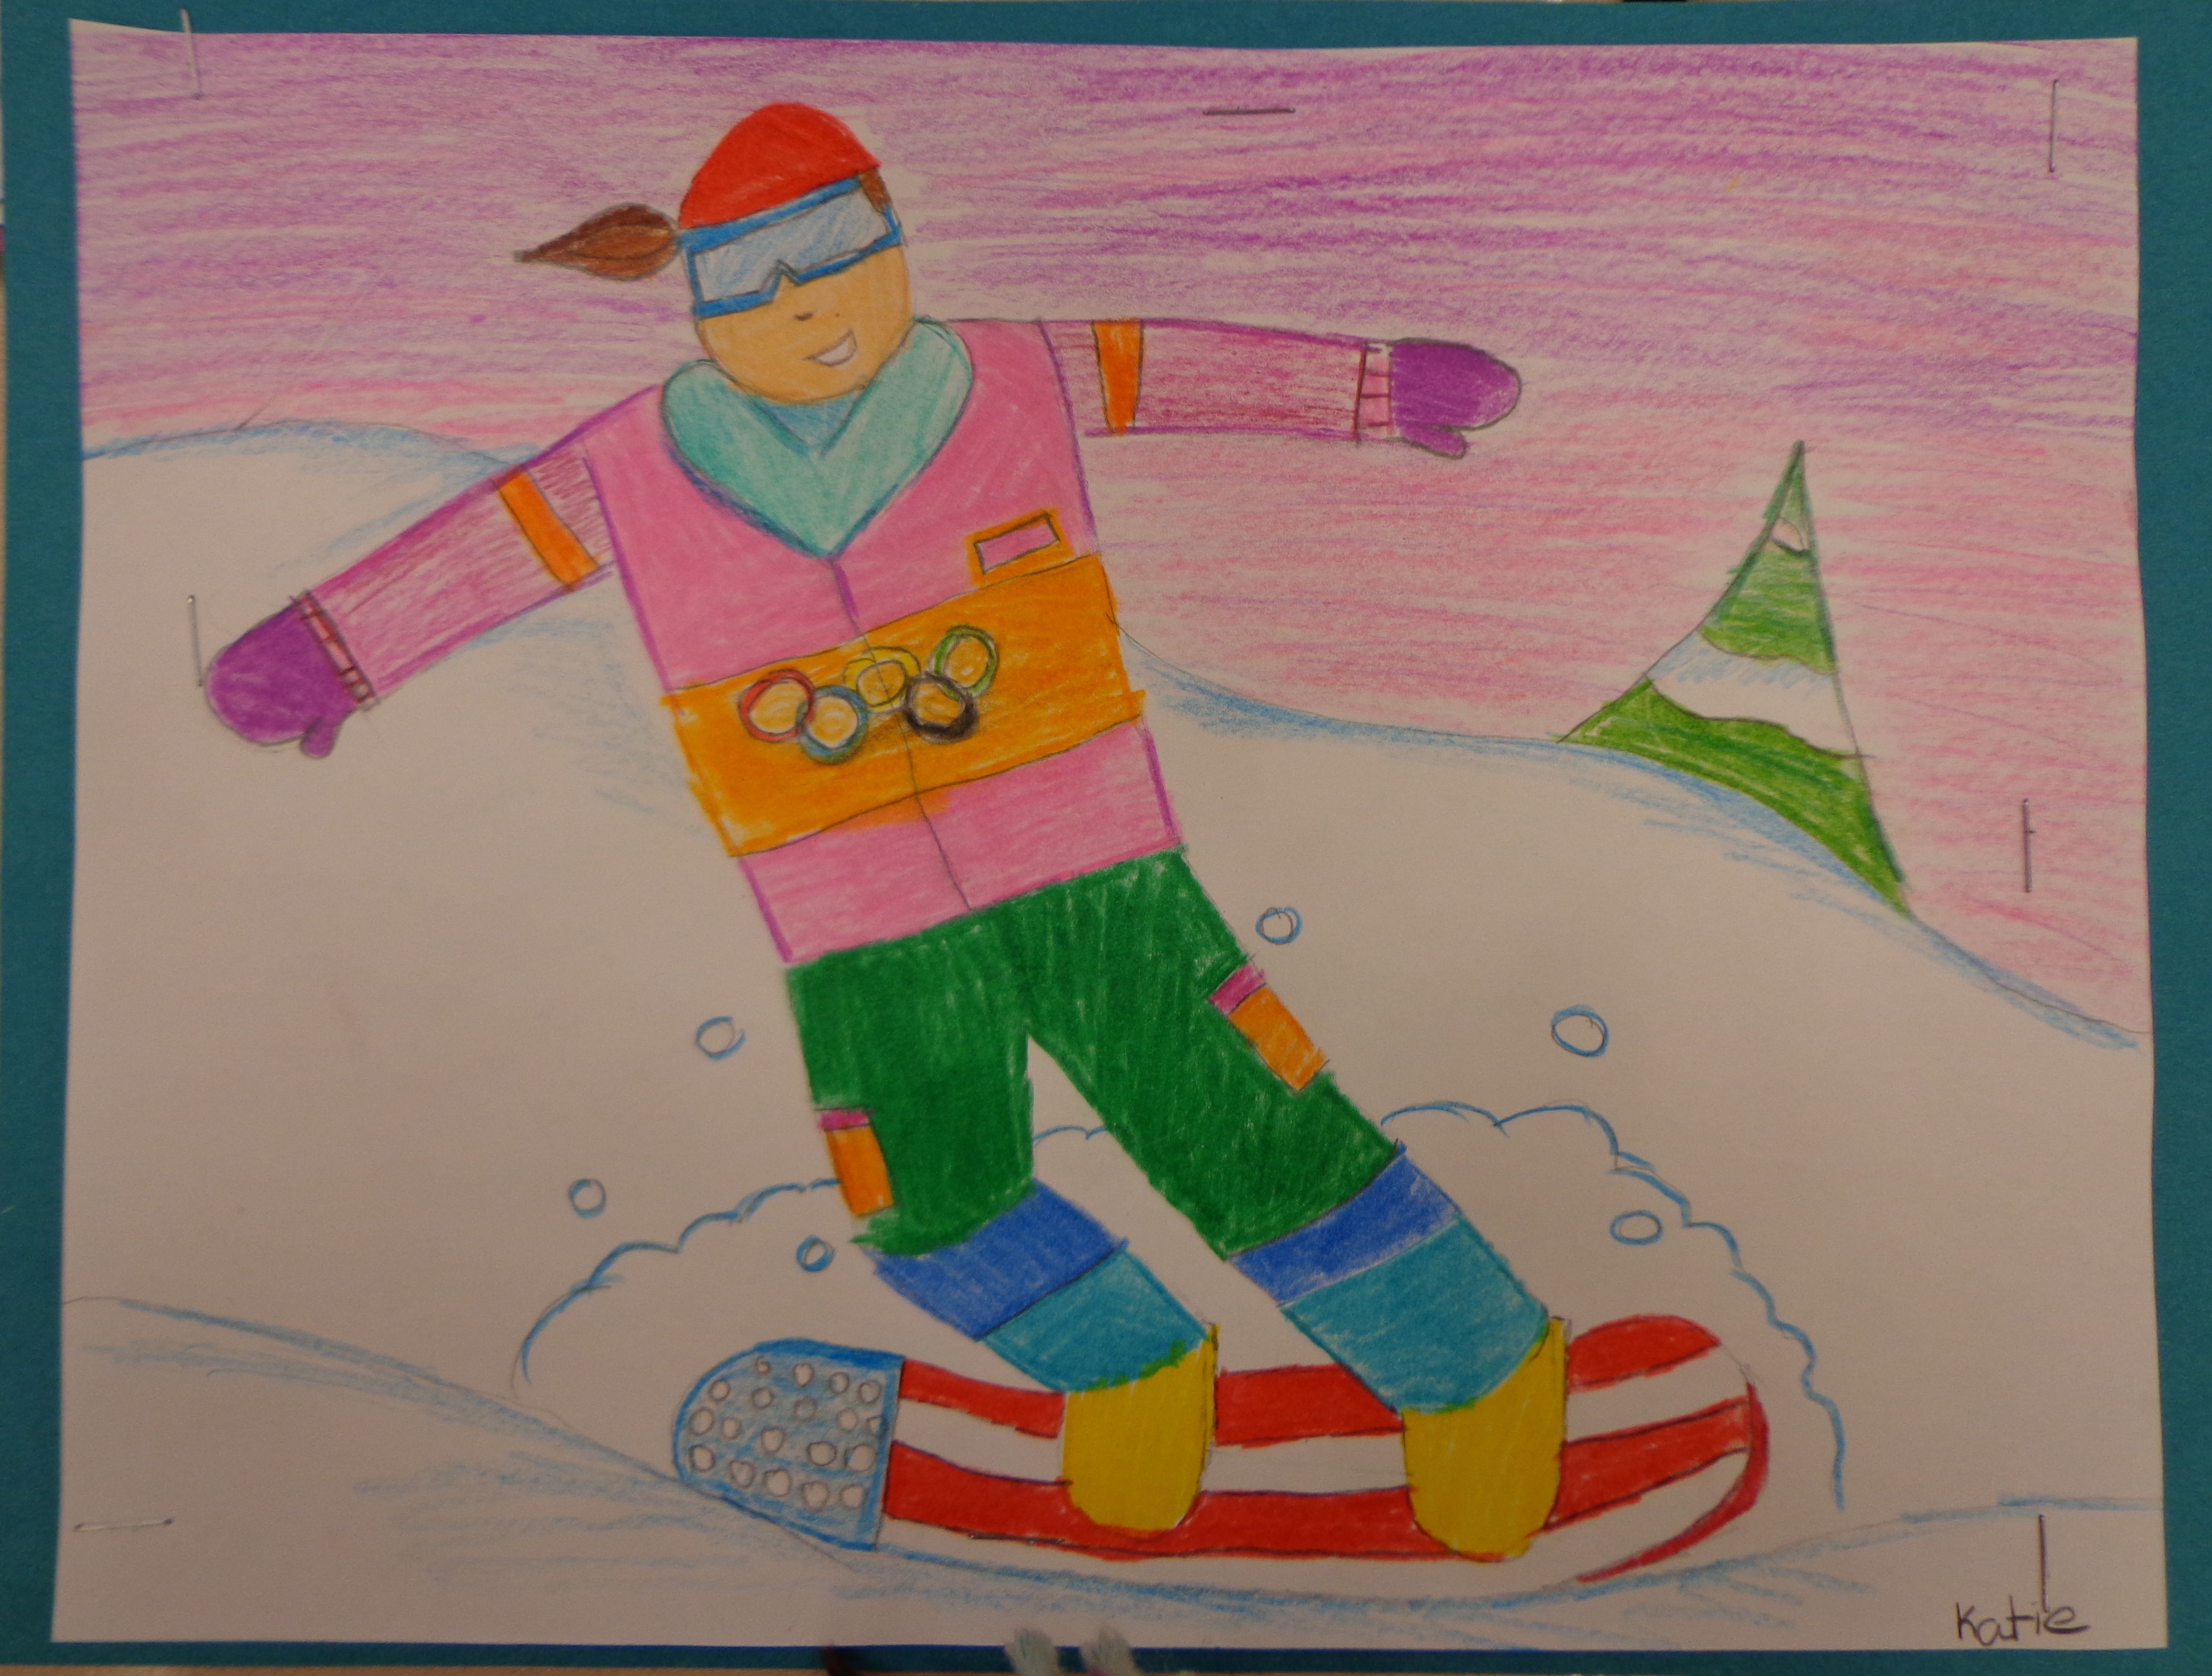 Olympic Snowboarder artwork done by one of our students in Illinois ...